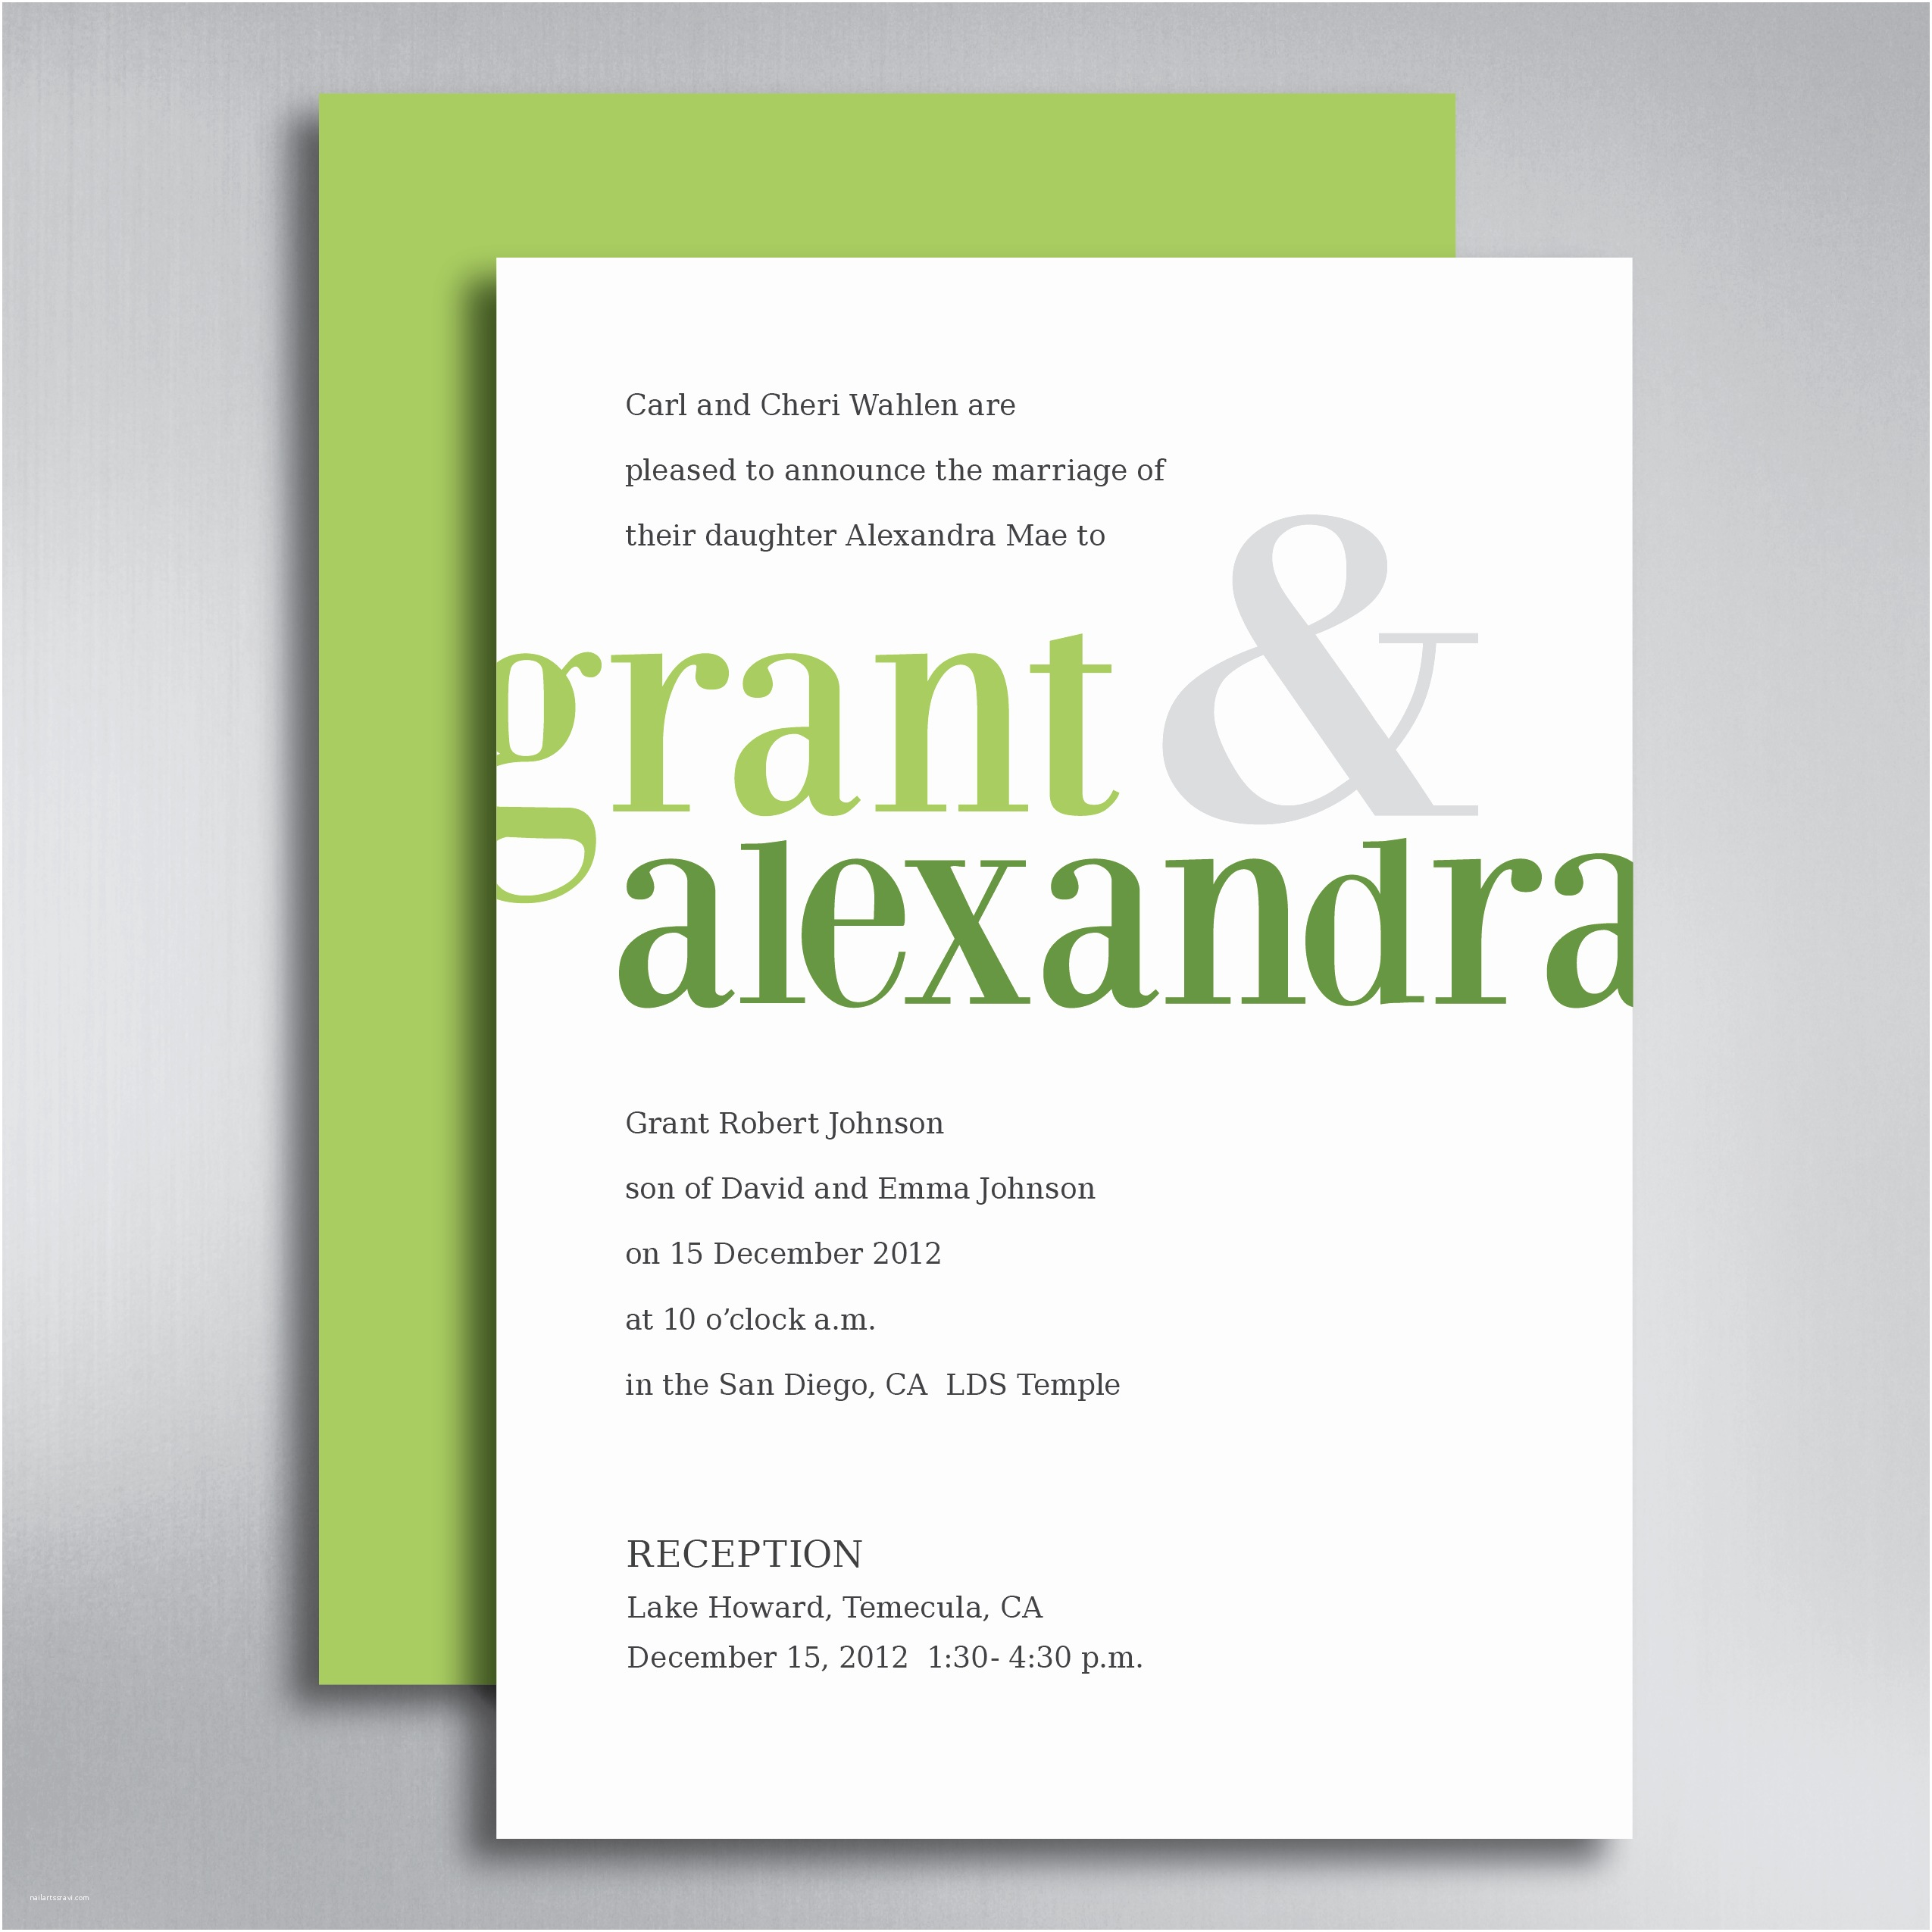 Top Wedding Invitation Designers Pinterest Embed White and Green Design Bined